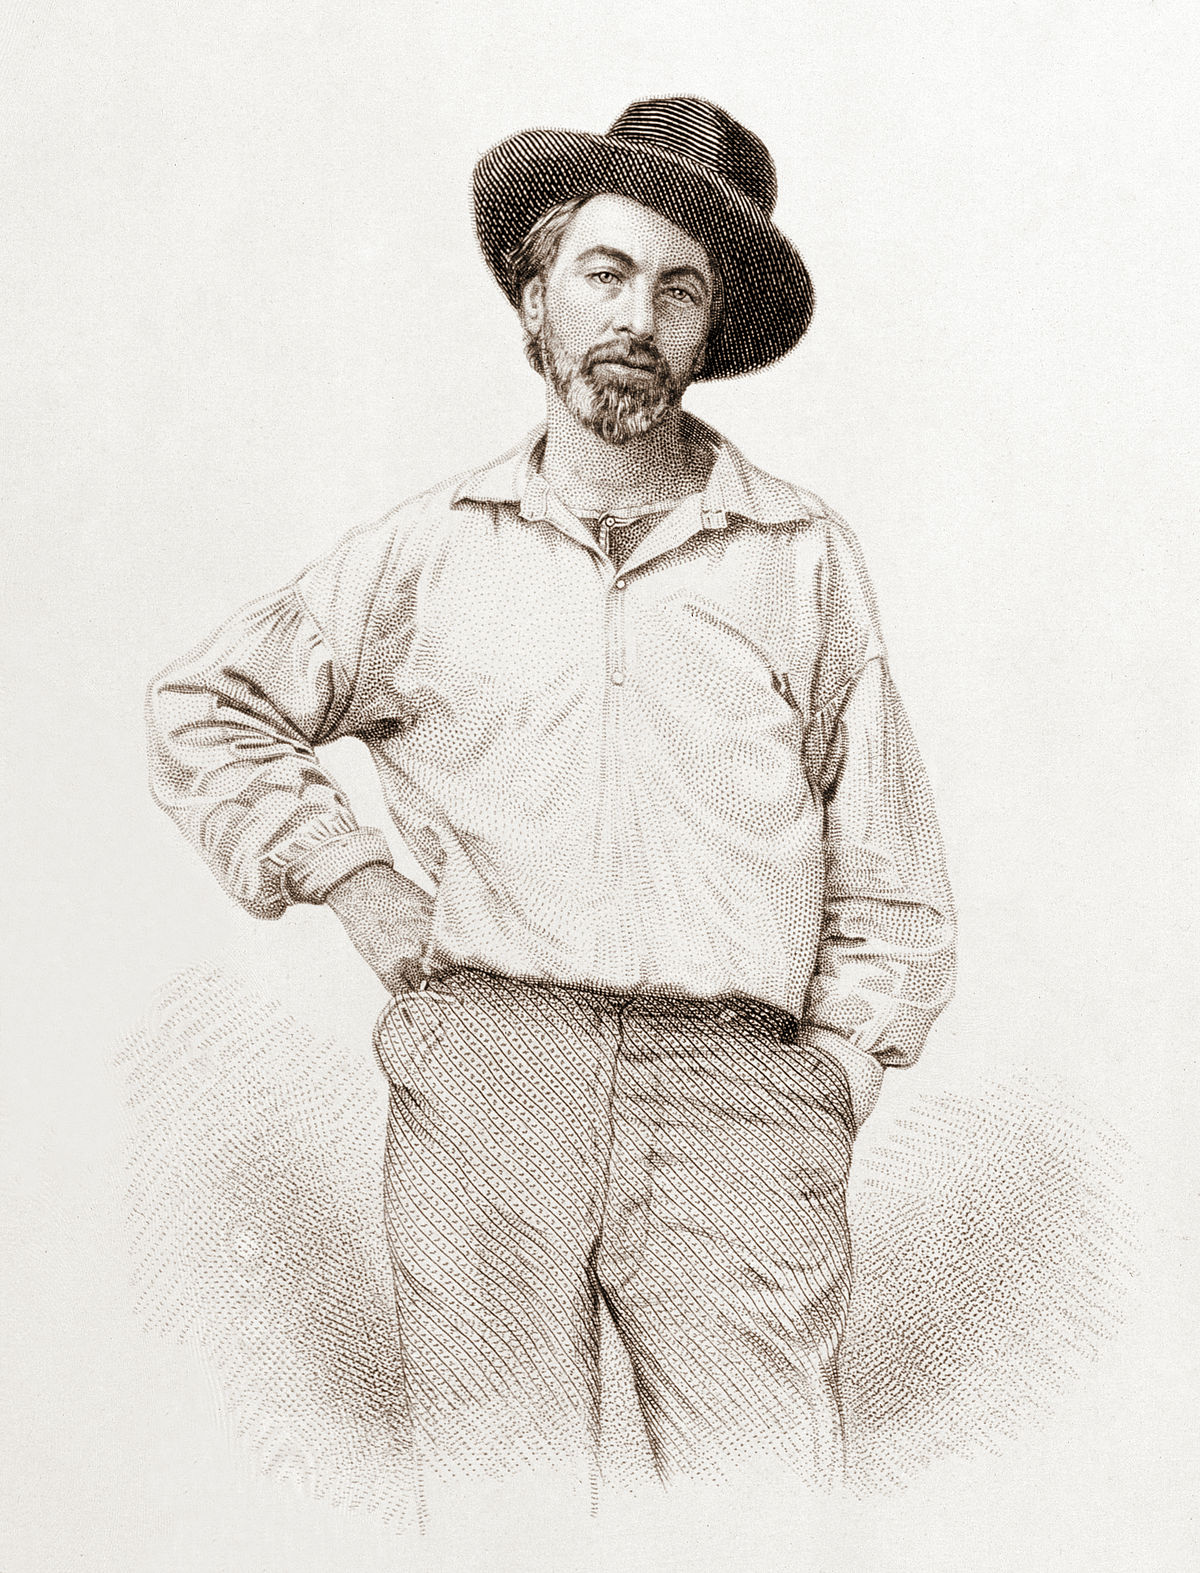 1200px-Walt_Whitman,_steel_engraving,_July_1854.jpg